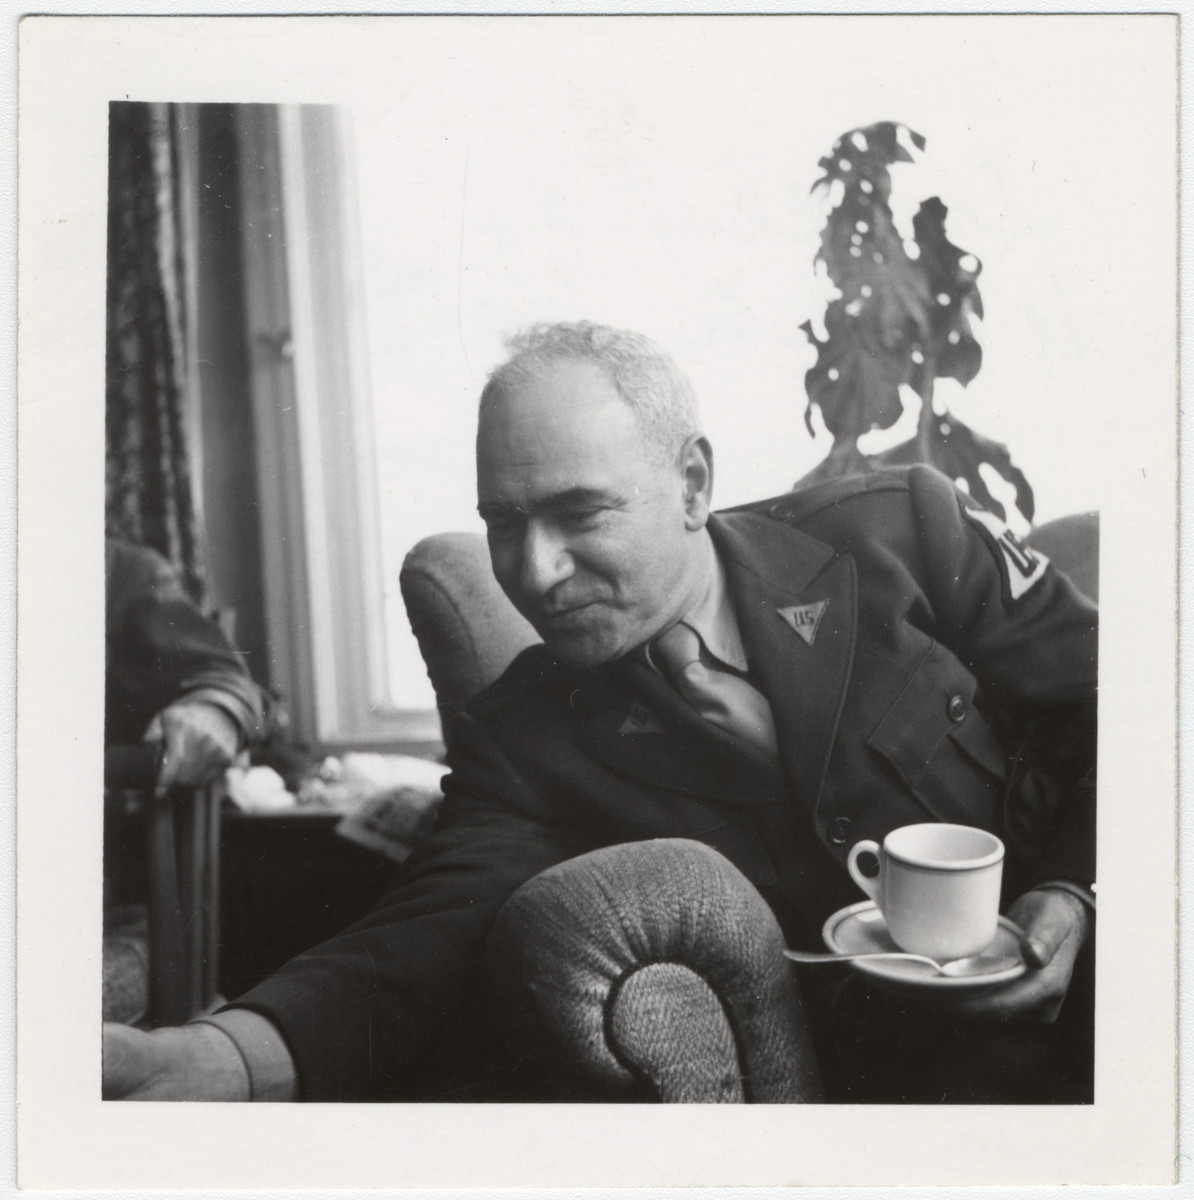 Close-up portrait of Maurice Levitt holding a coffee cup in the UNRRA House in Lindenfels.